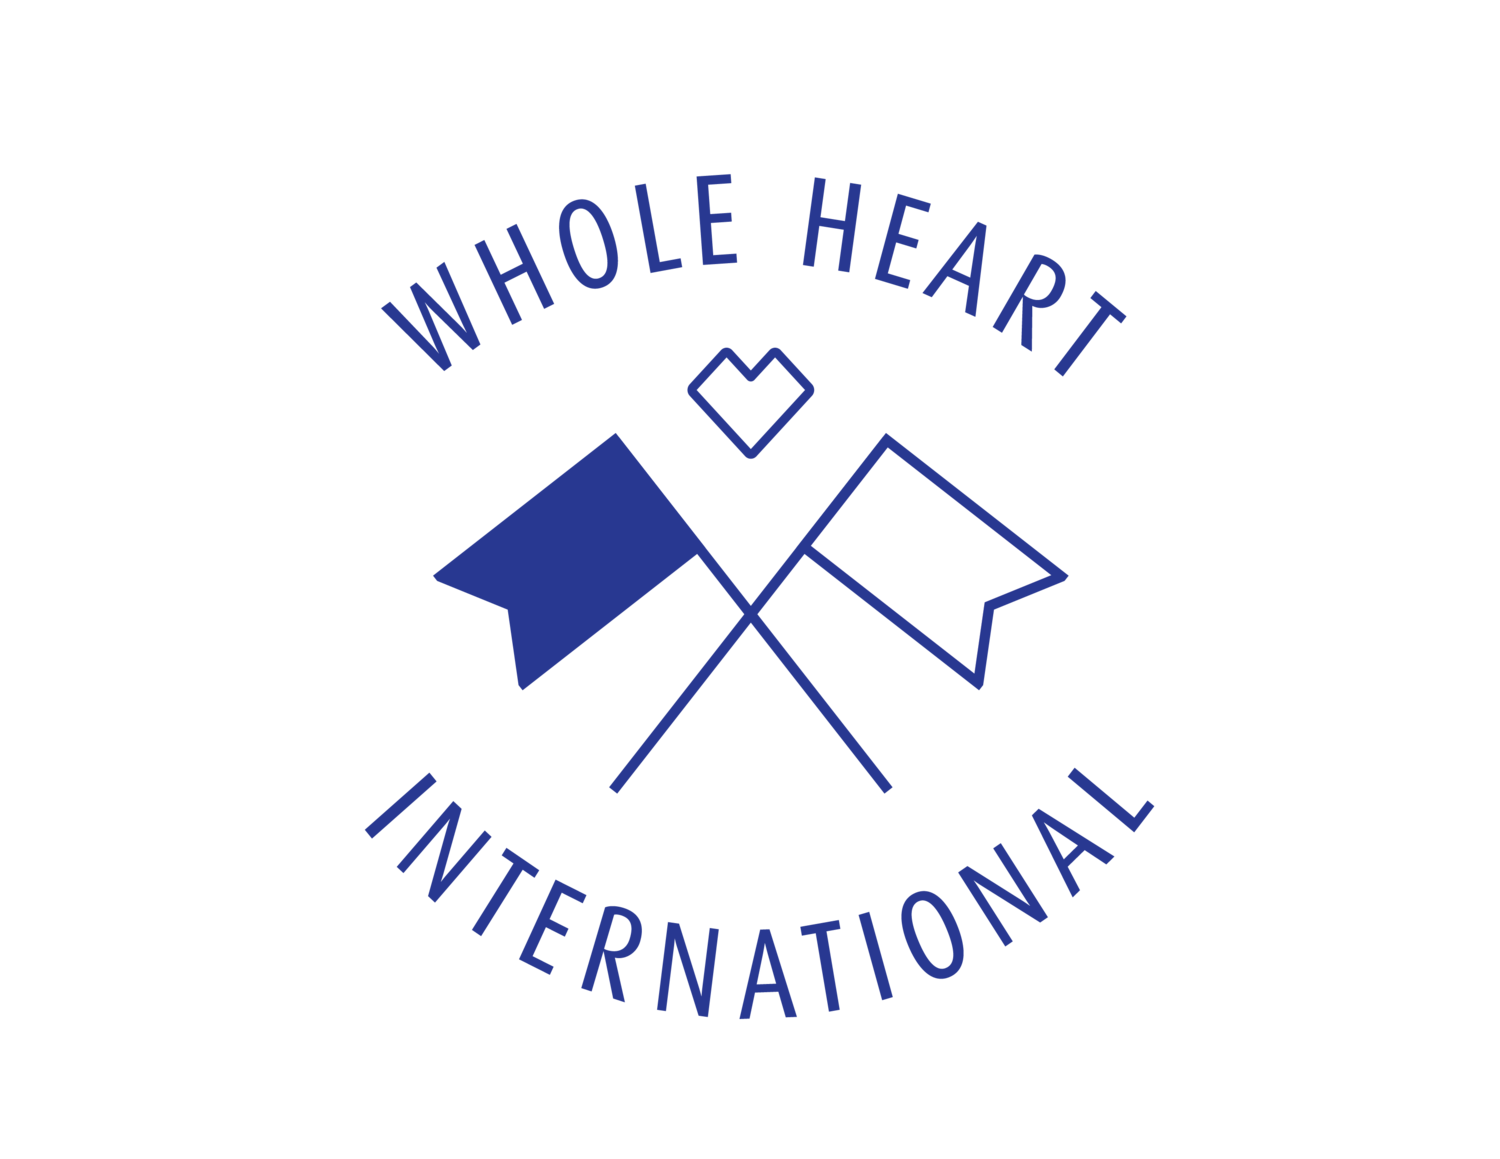 Whole Heart International